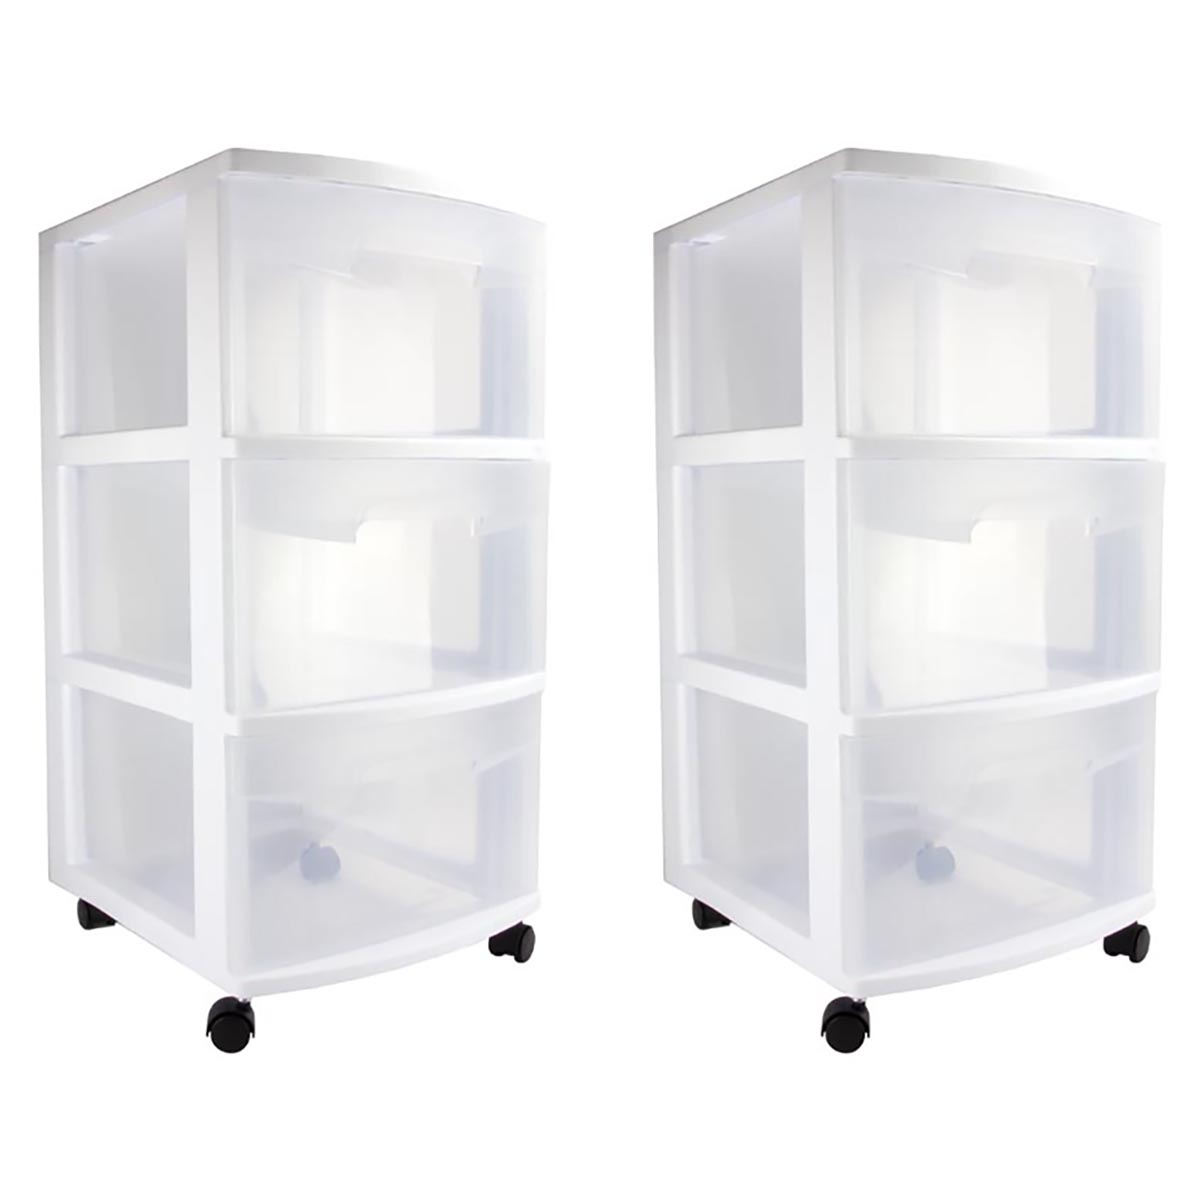 Portable Storage Carts : Sterilite home drawer storage cart portable container